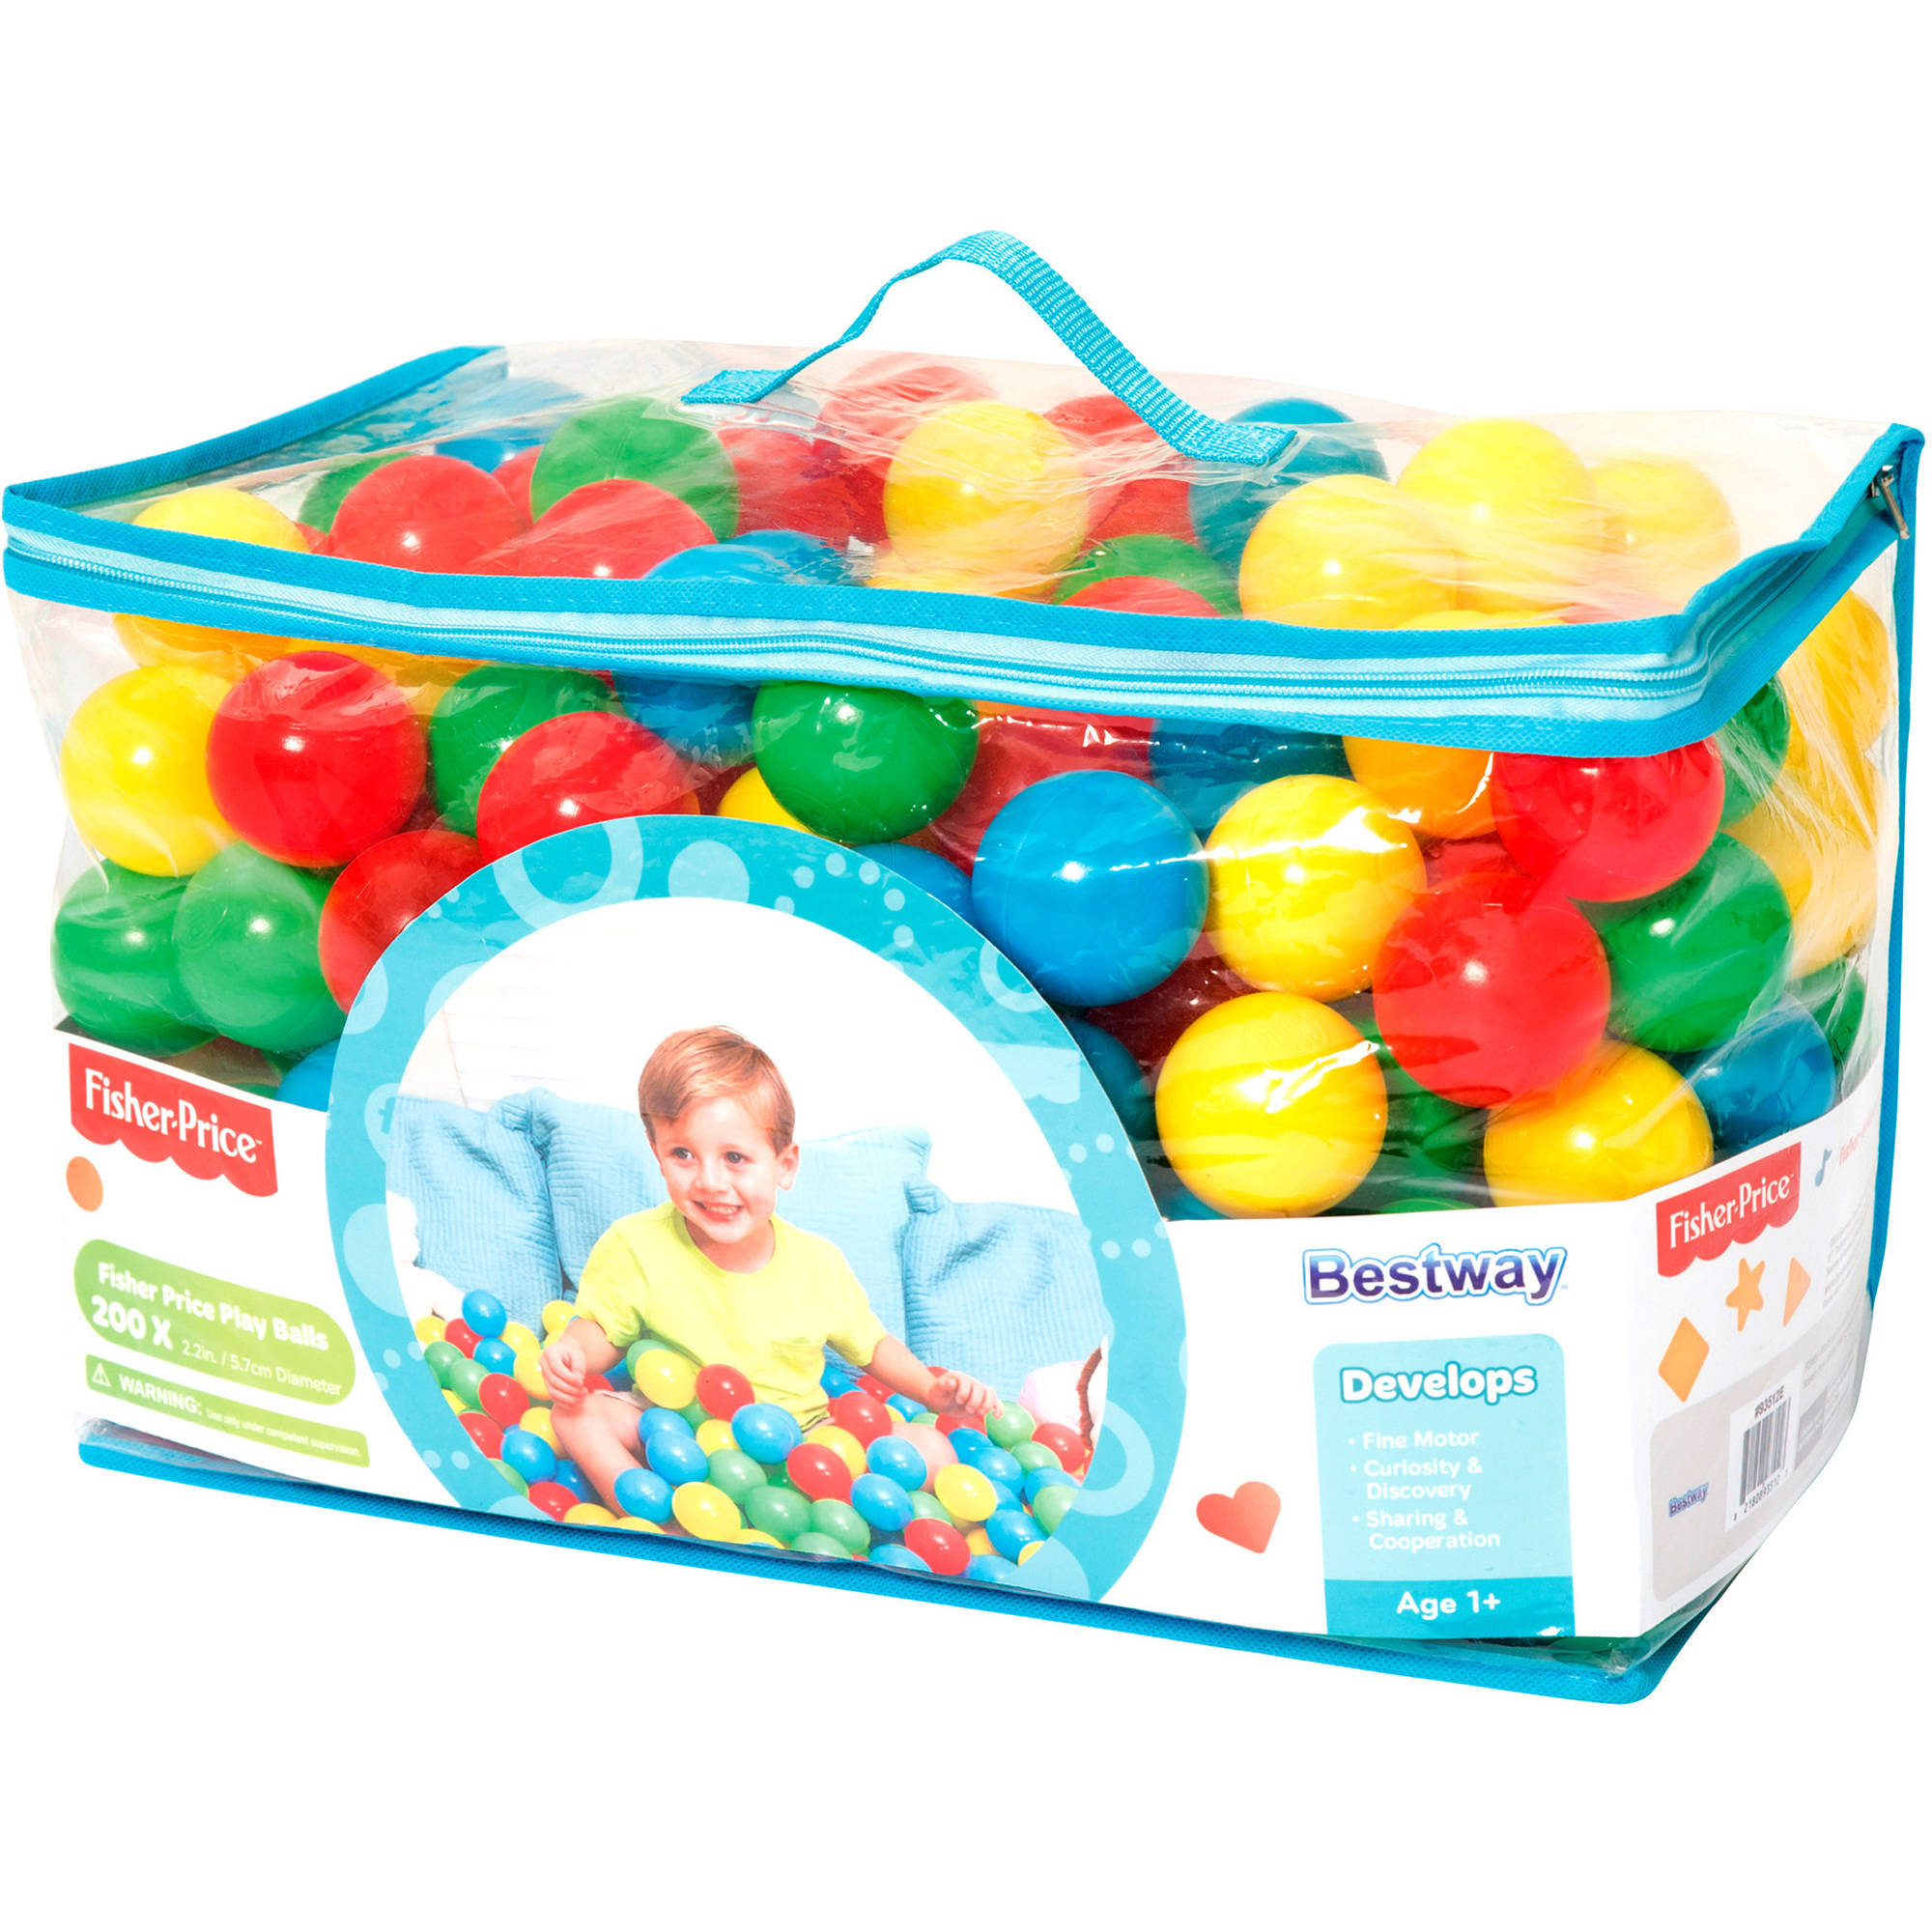 Bestway Fisher Price 200 Play Balls by Bestway